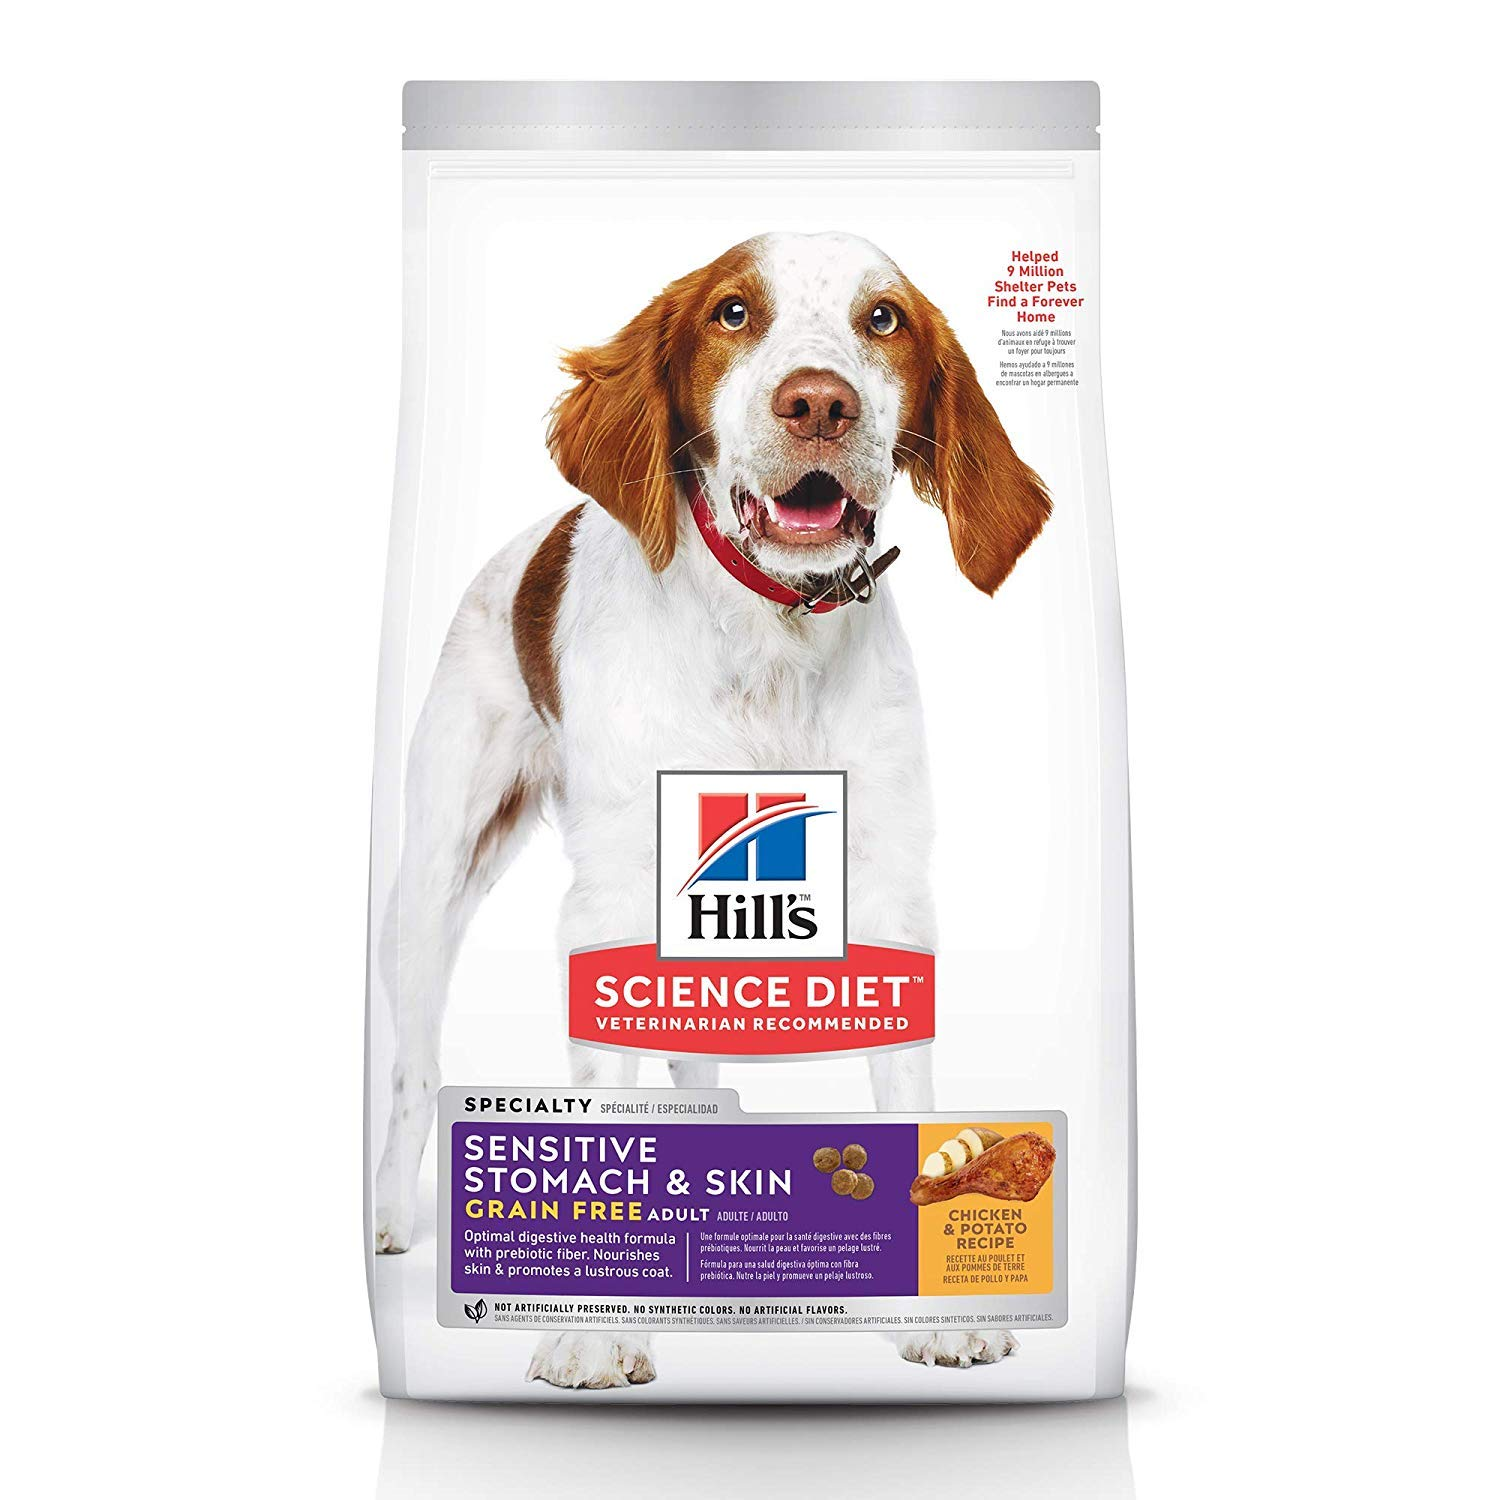 Hill's Science Diet Dry Dog Food, Adult, Sensitive Stomach & Skin, Chicken Recipe